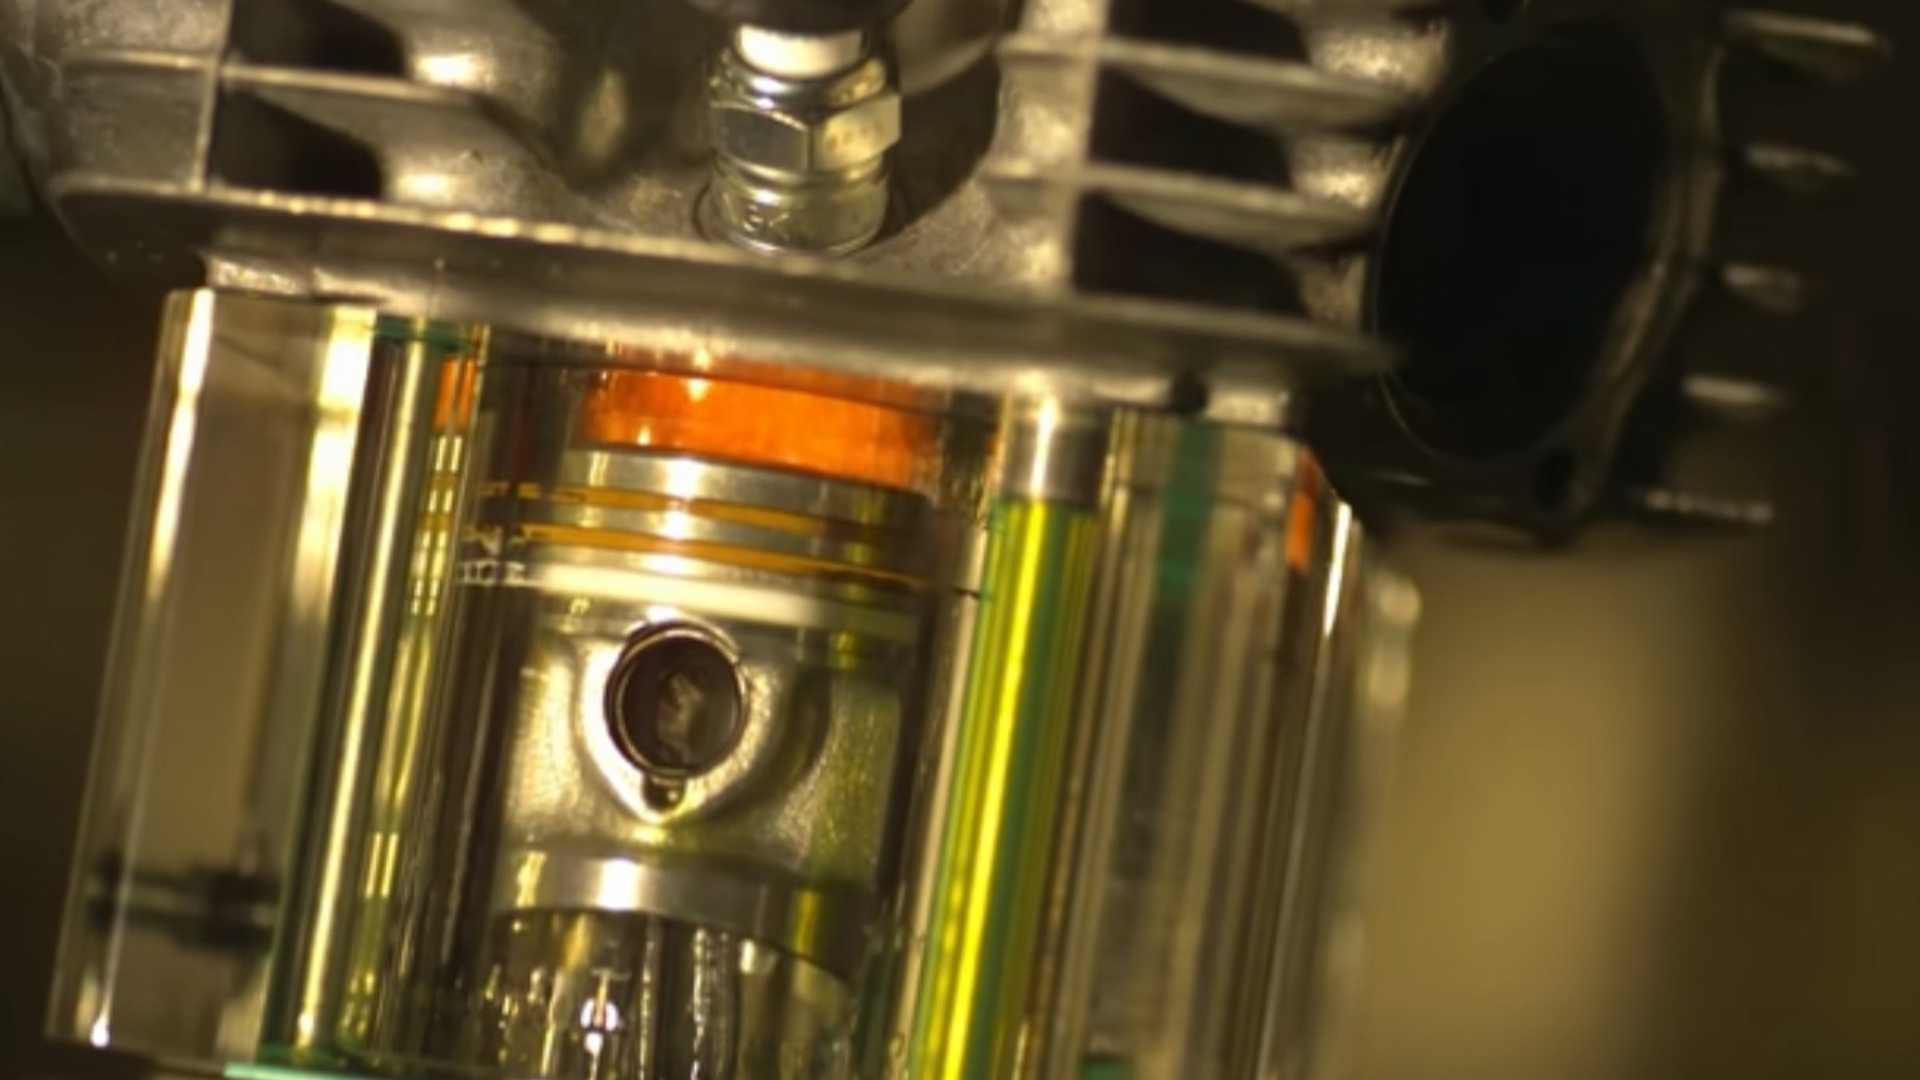 Slo-mo footage of running engine with clear cylinder is mesmerising